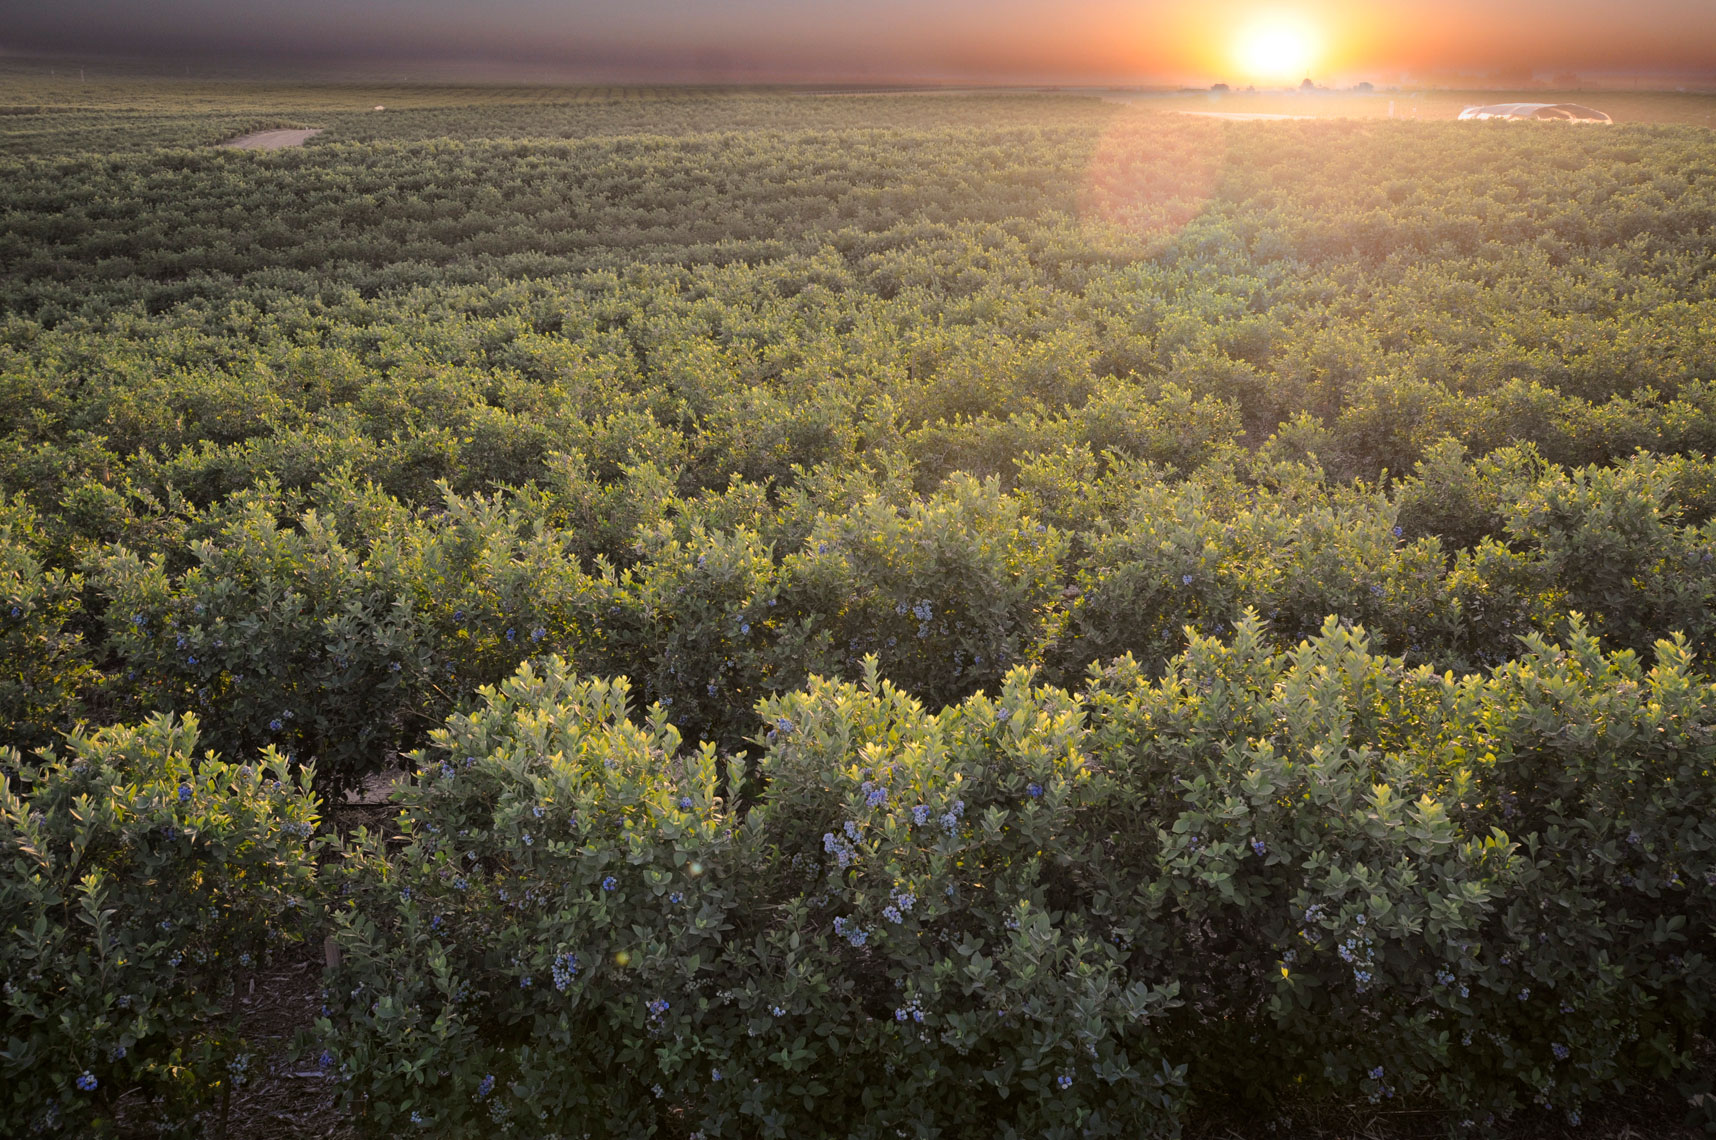 Blueberry-fields-at-sunset-in-Delano-California-by-farming-photographer-Joe-Atlas..